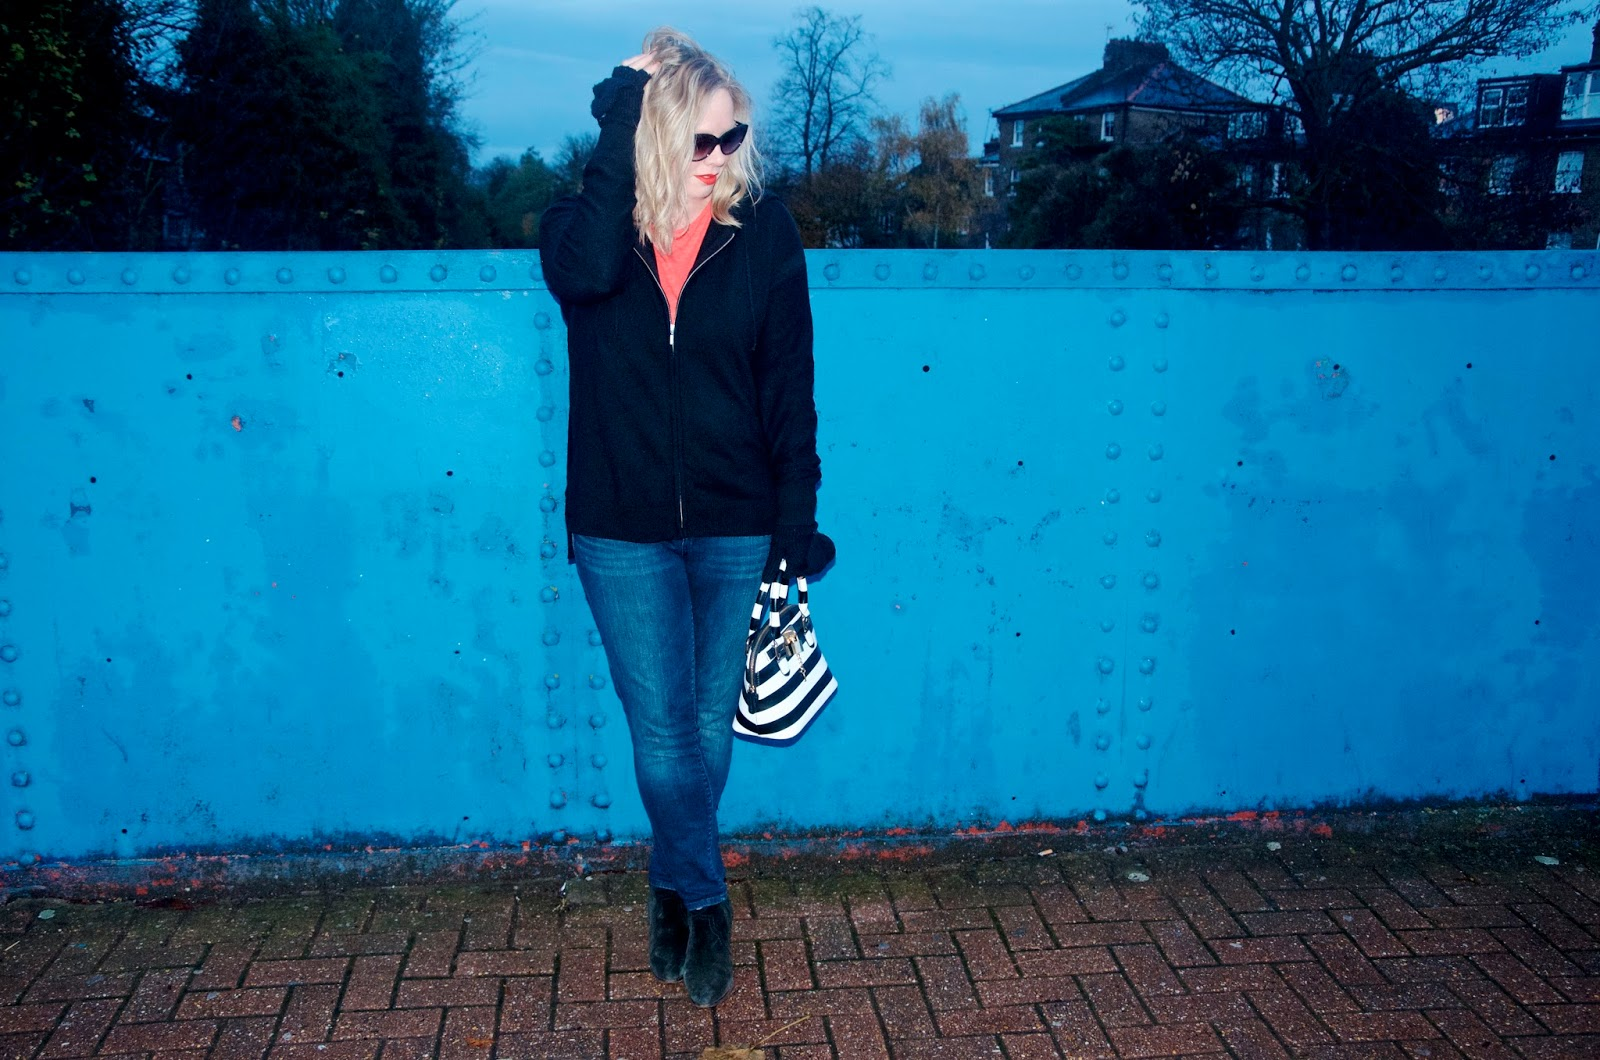 Black hoodie sweater and striped bag with blue bridge